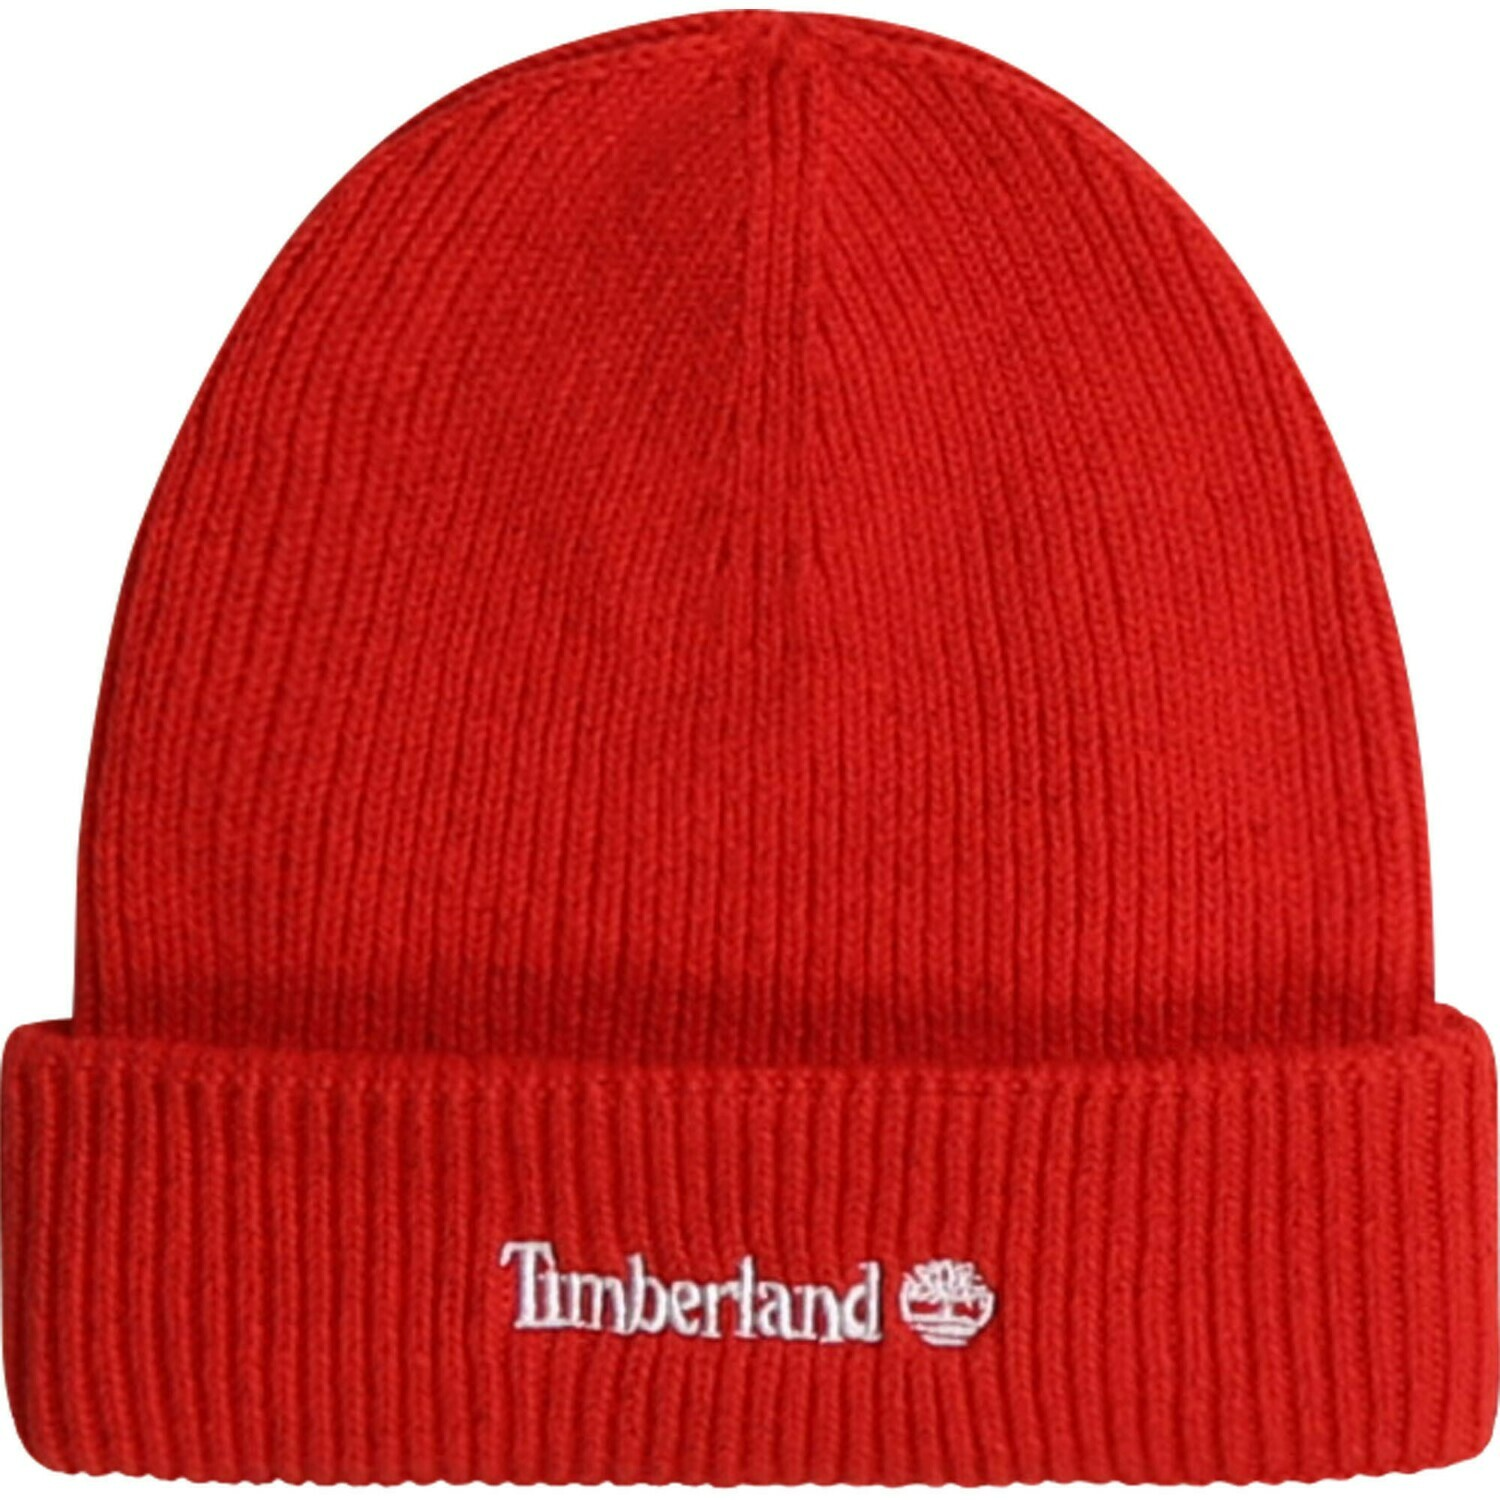 Timberland Red Pull on HAT